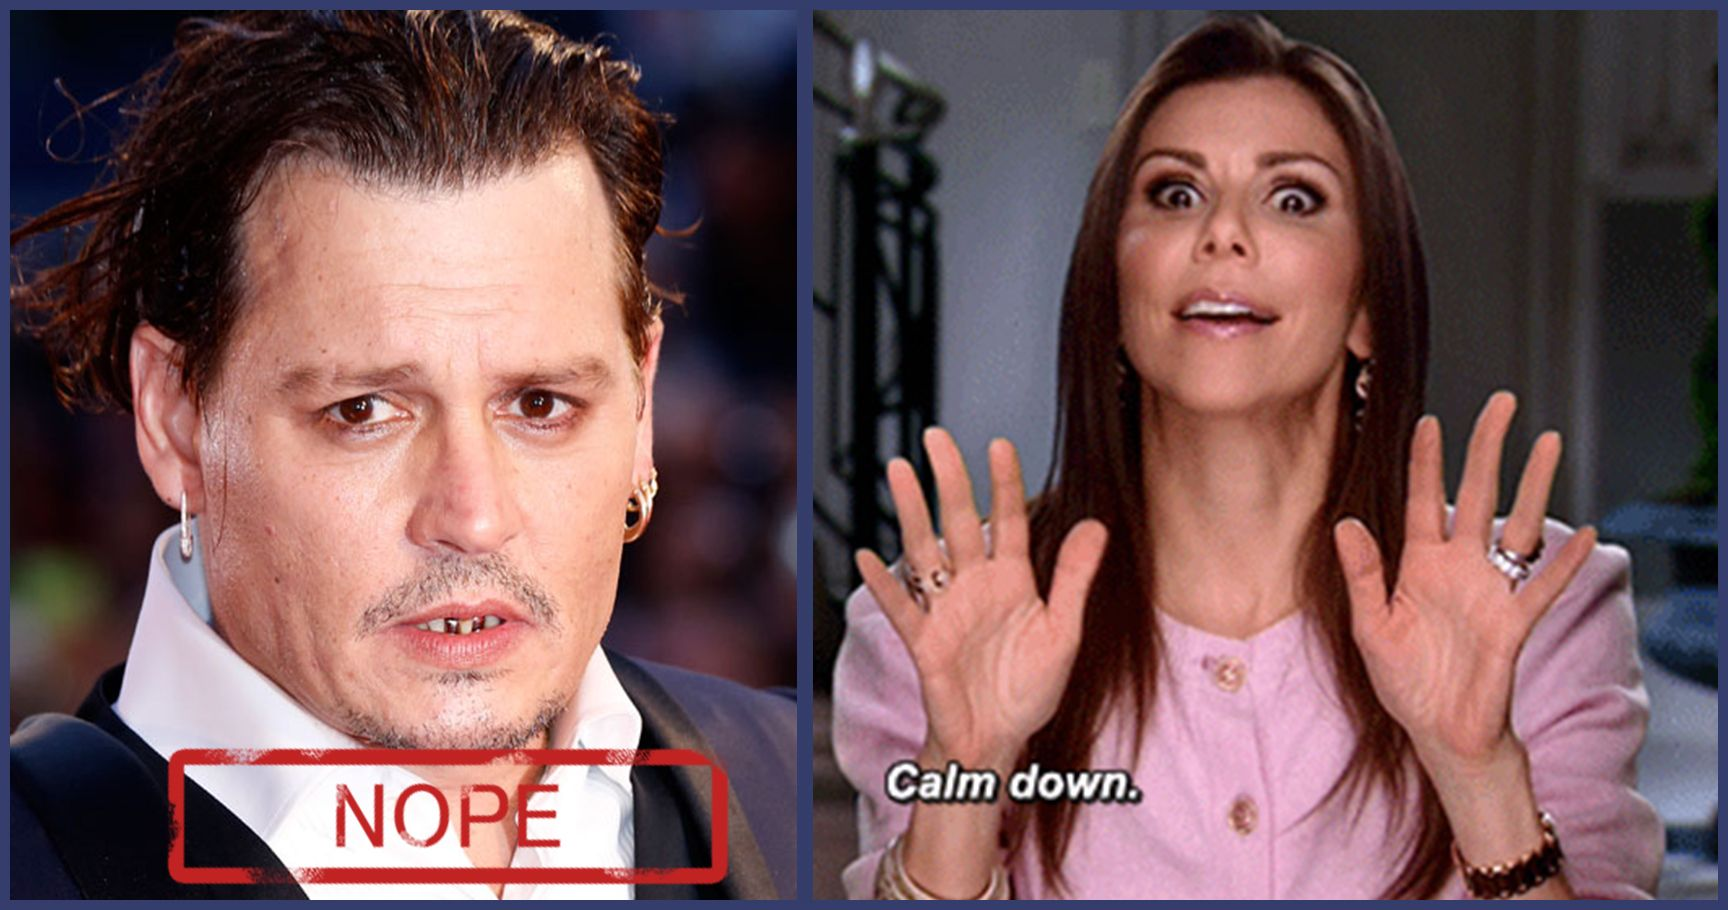 15 Reasons Johnny Depp Needs To Stop Making Movies